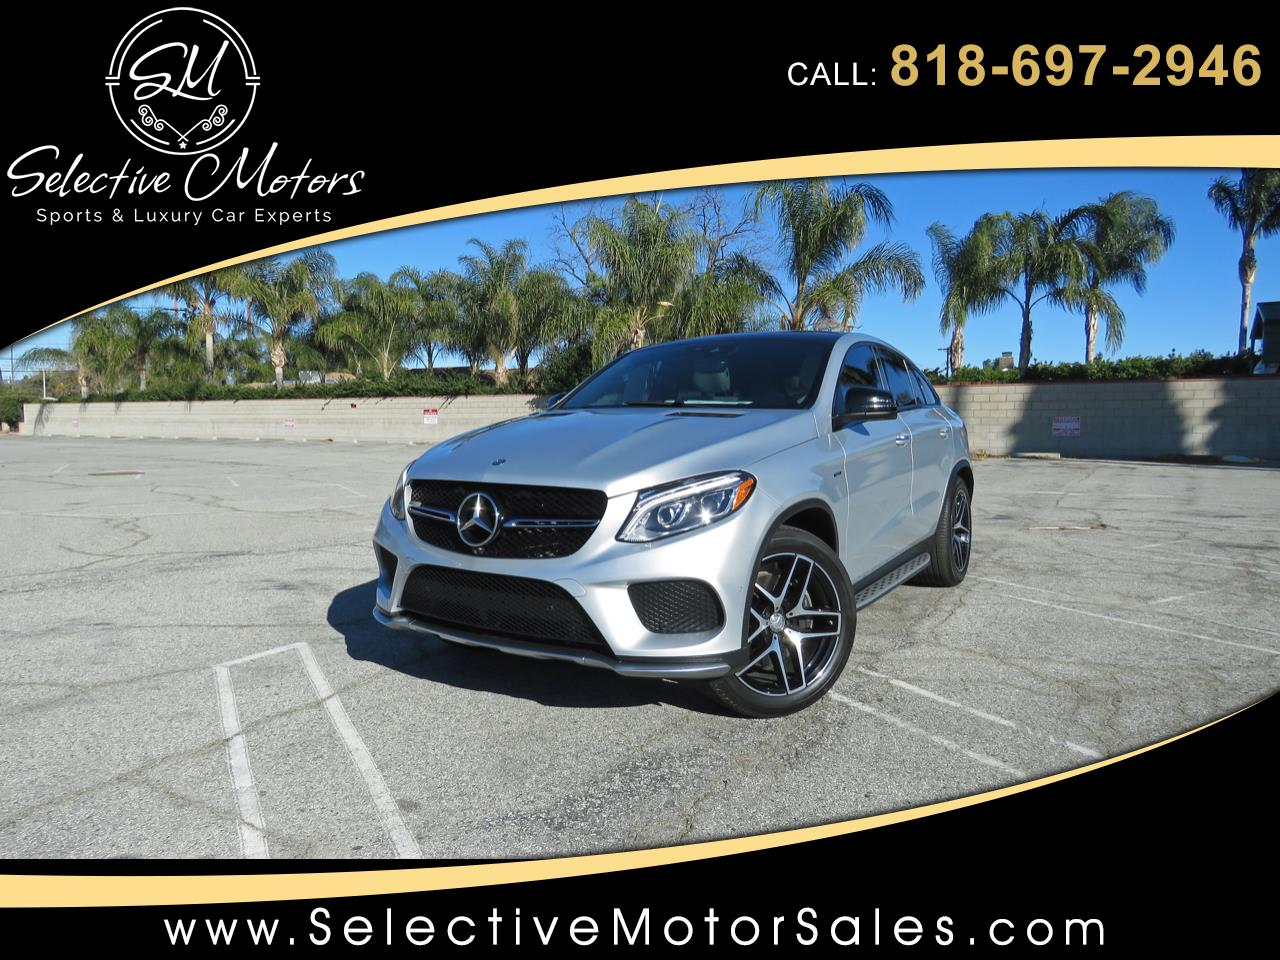 2016 Mercedes-Benz GLE-Class GLE450 AMG 4Matic Coupe